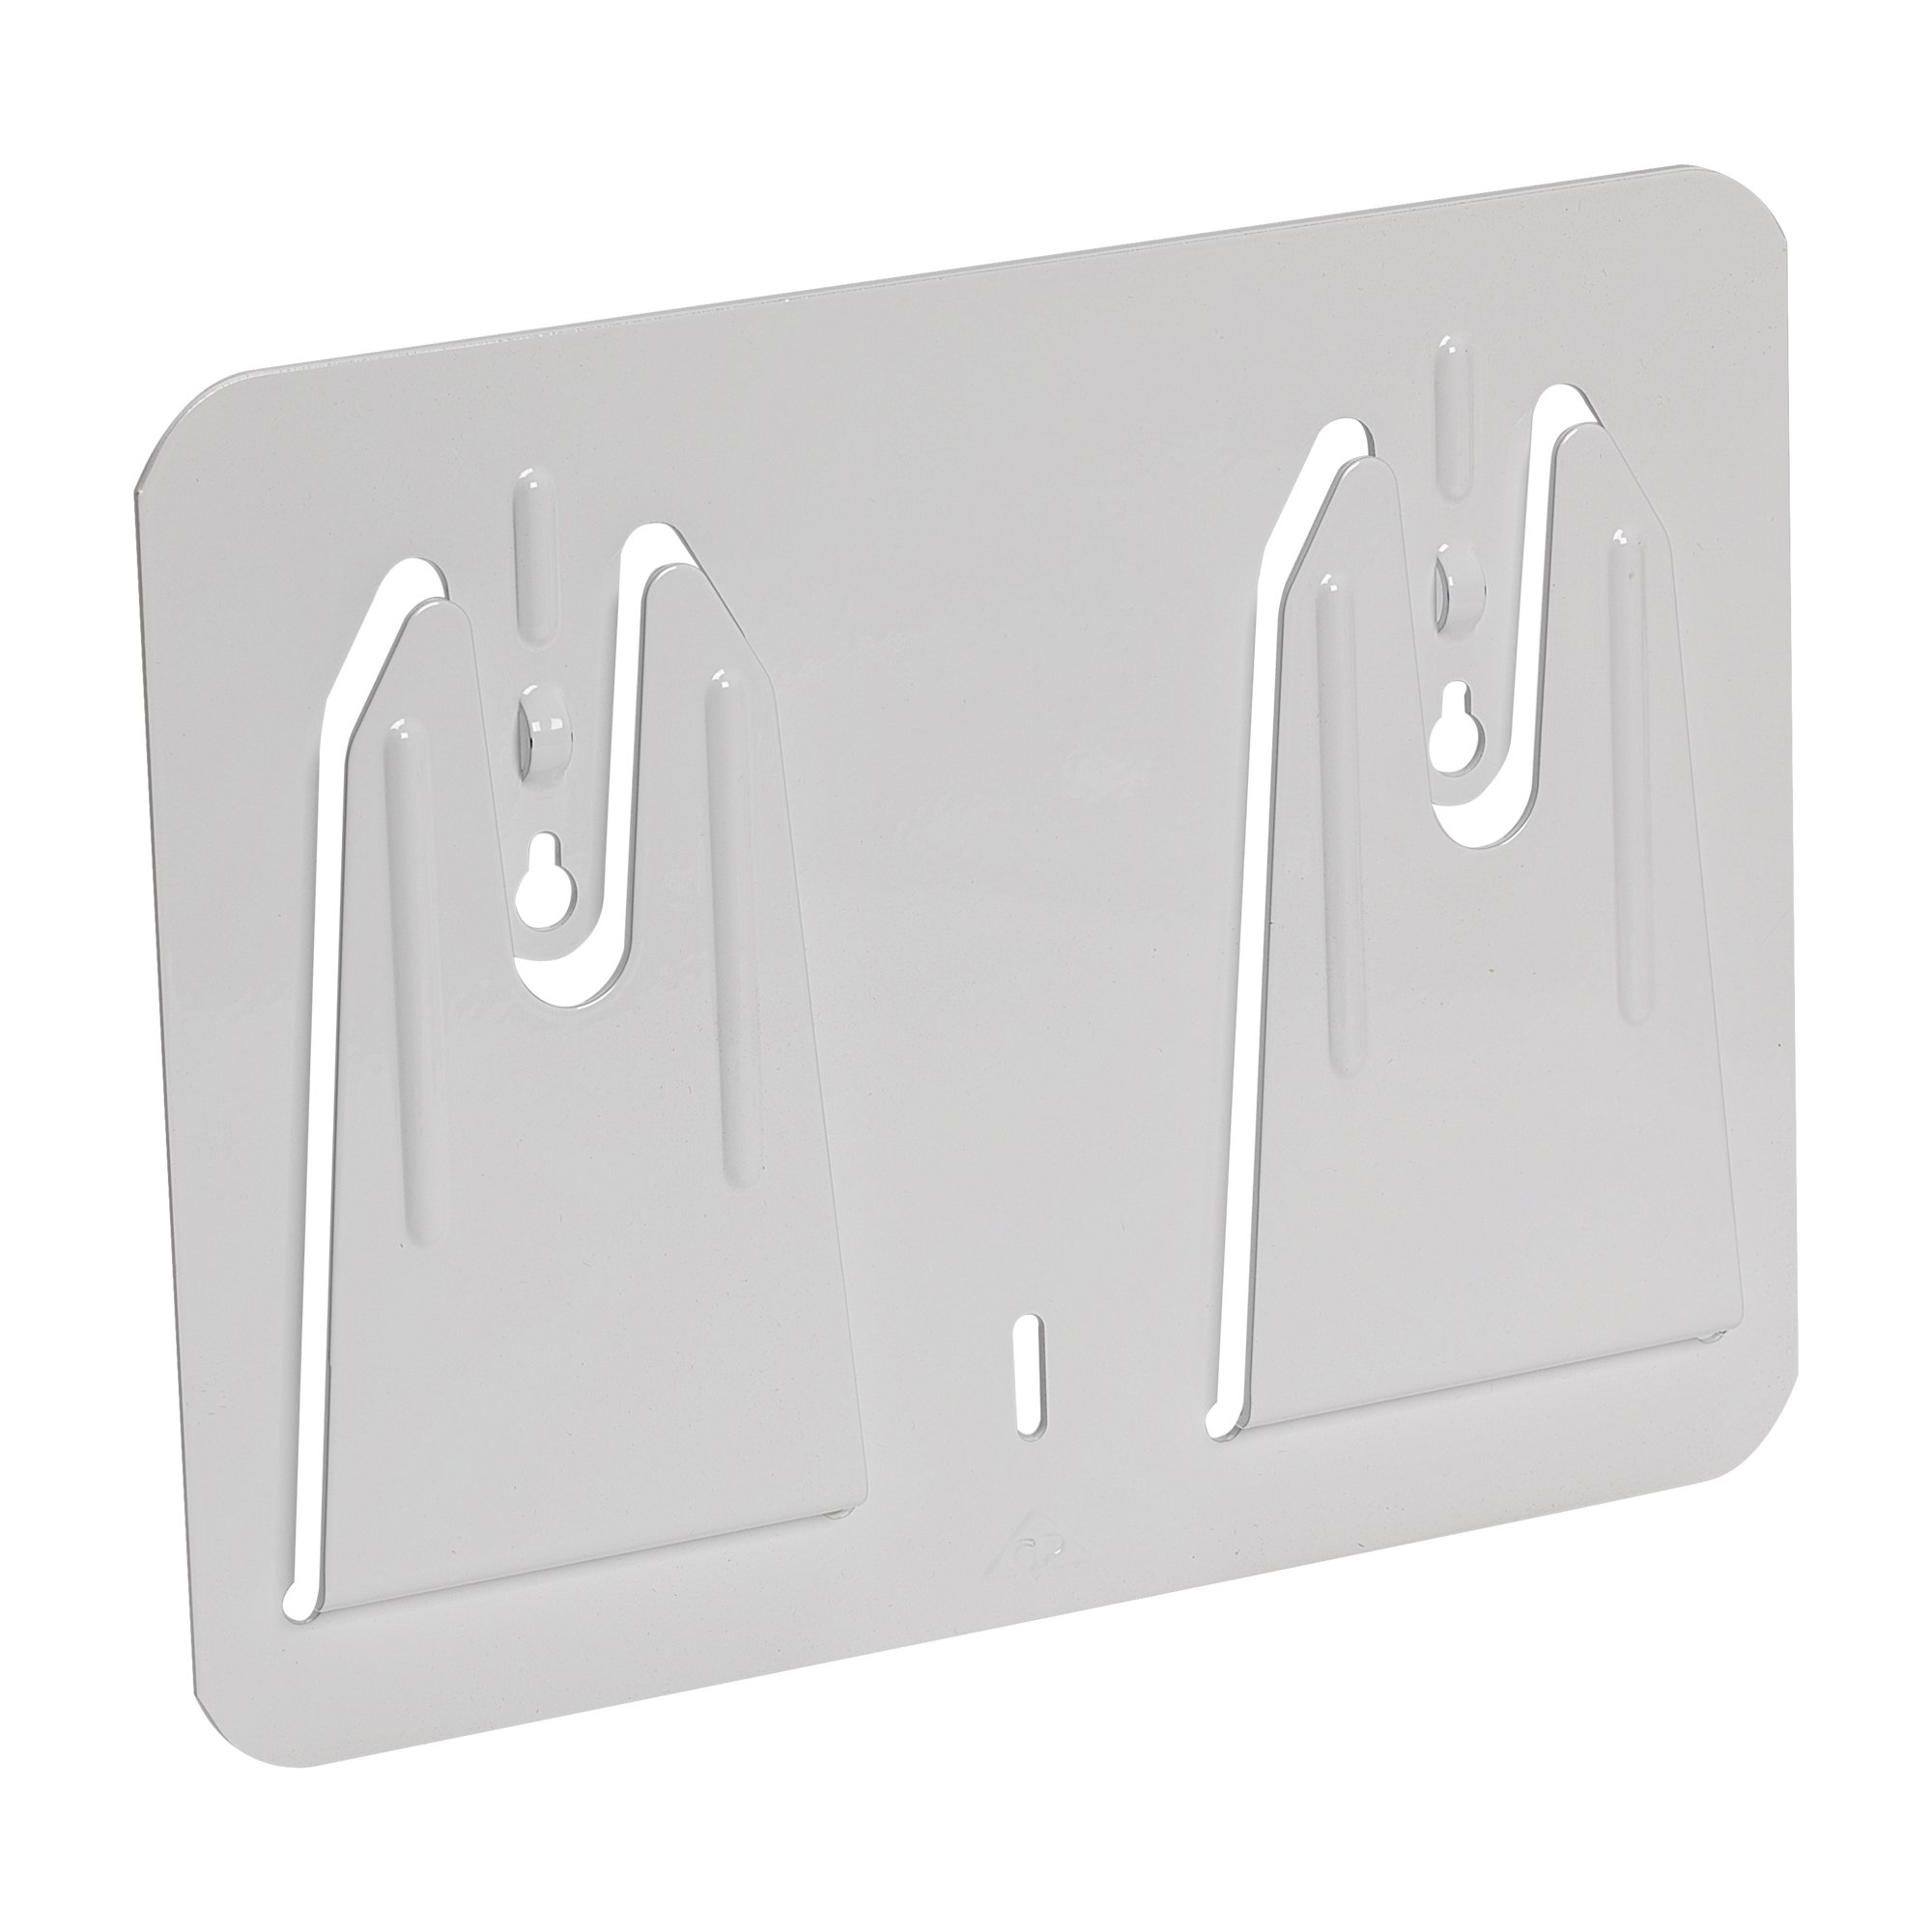 Georgia-Pacific Multiplate 50313 White Metal Wall Mount Boxed Wiper Dispenser, 8.875'' Width x 9.25'' Length